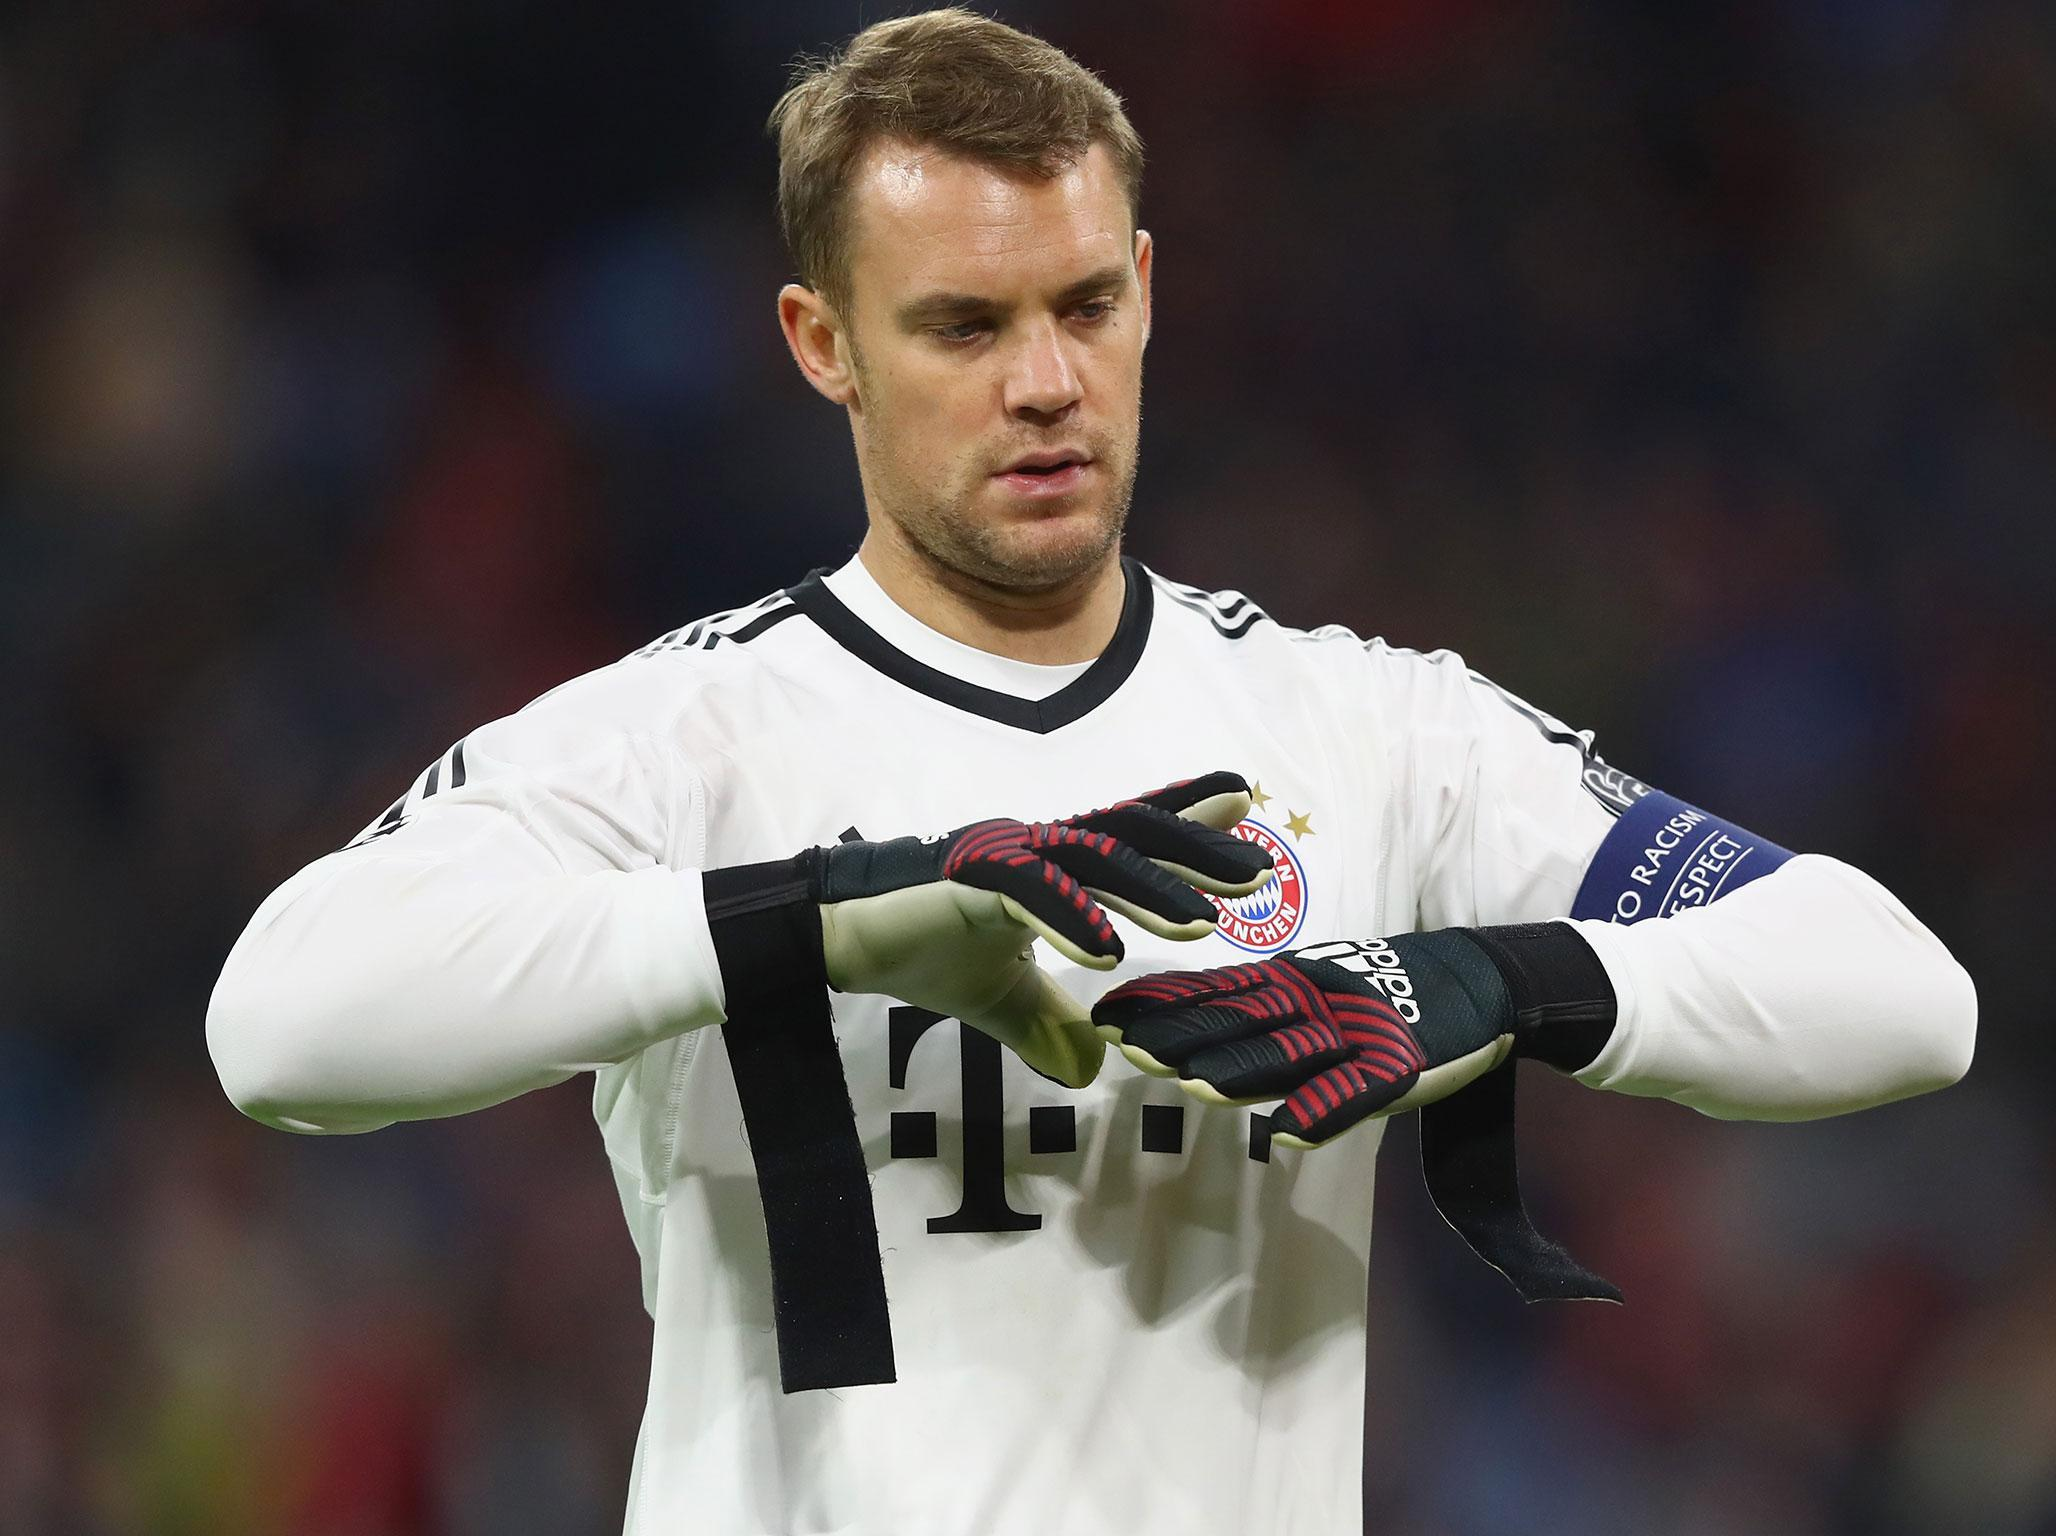 Bayern Munich's Manuel Neuer ruled out until 2018 after ...